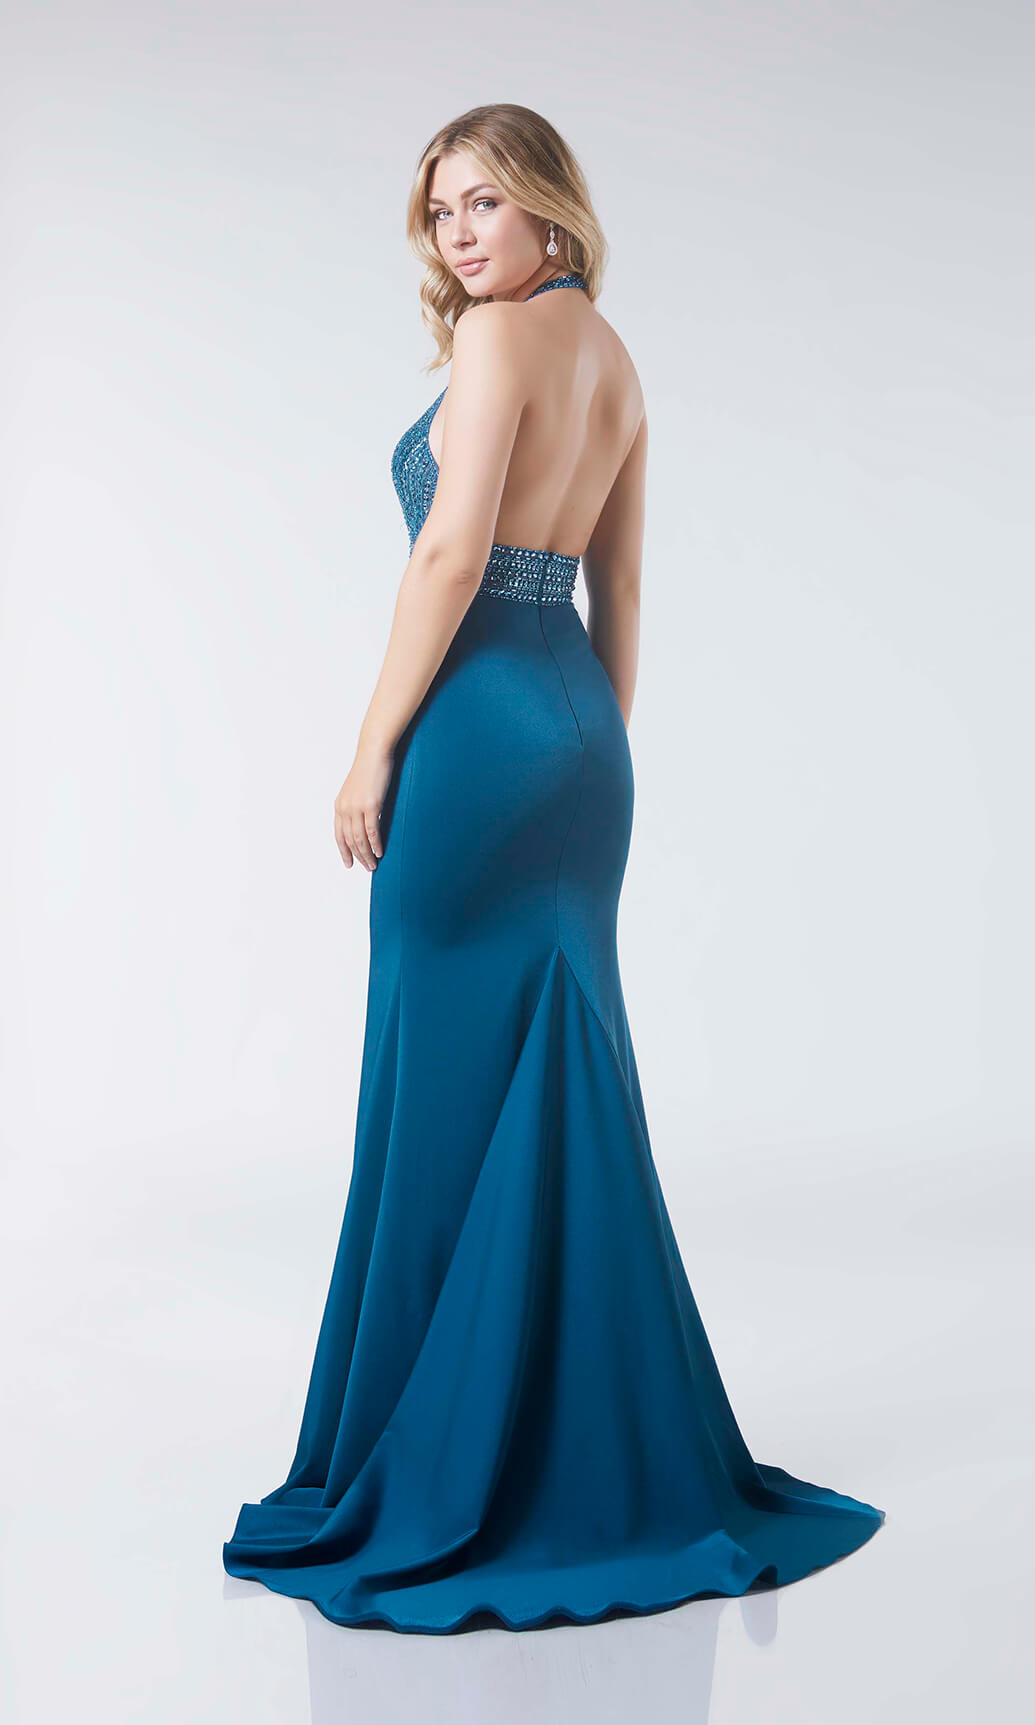 Connie Peacock Tiffanys Halterneck Prom Evening Dress - Fab Frocks